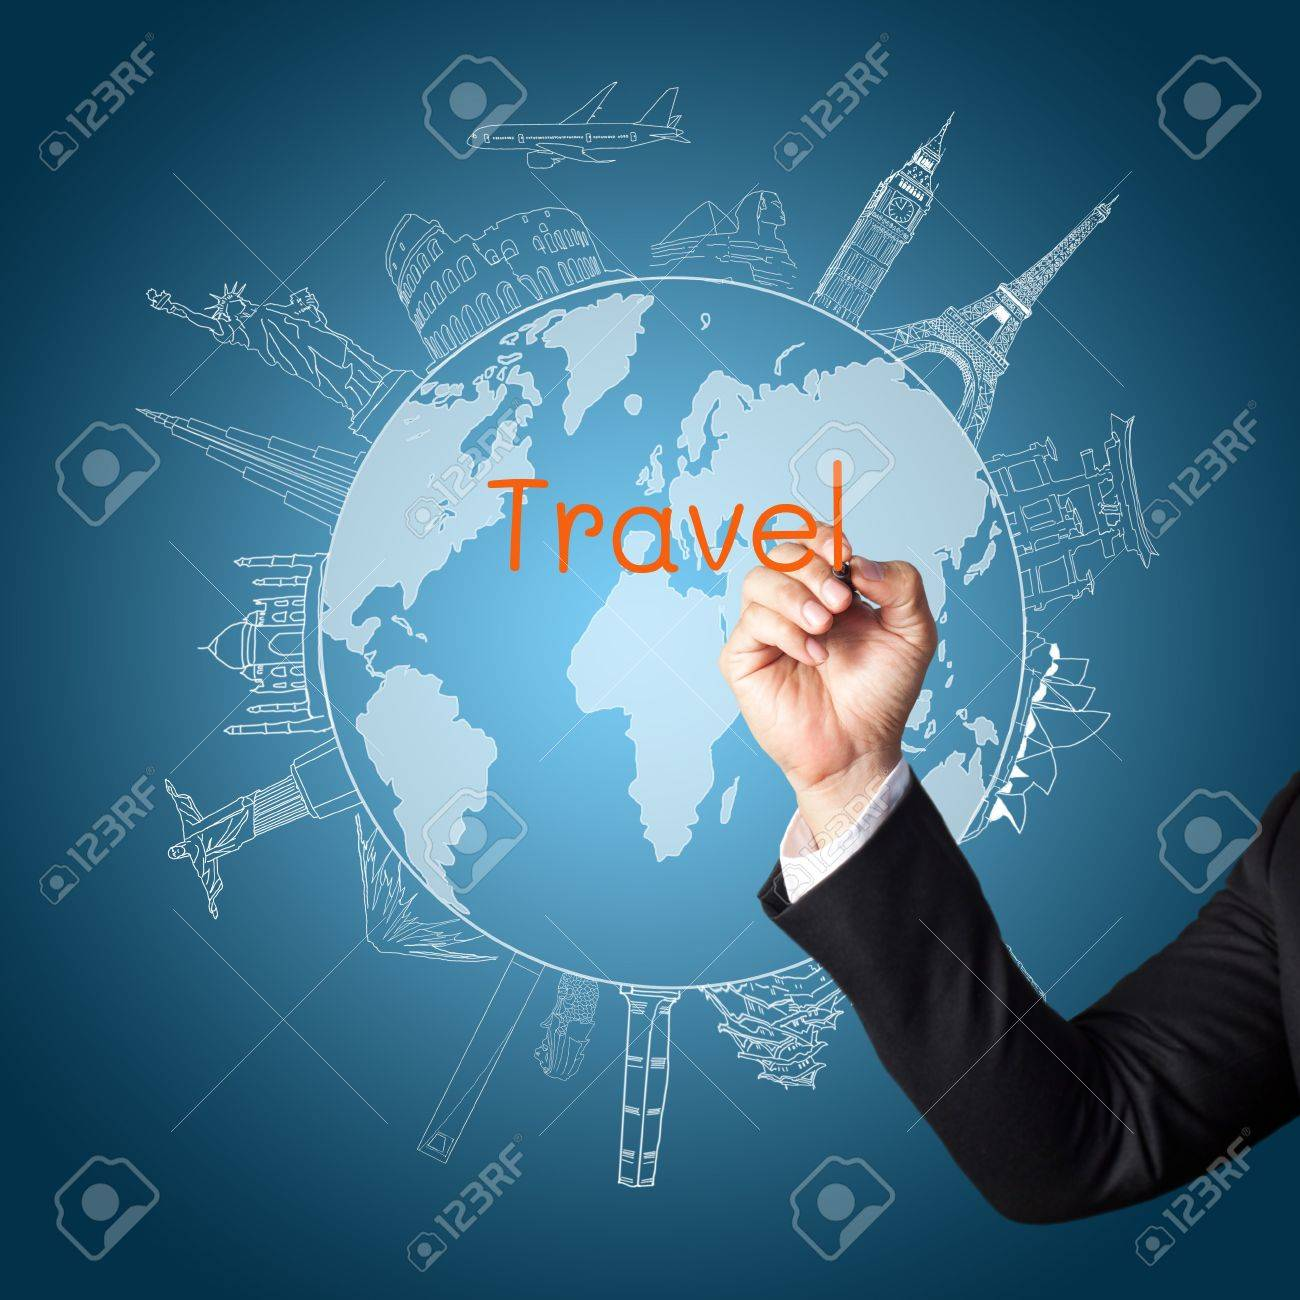 drawing the concept travel around the world Stock Photo - 14399803